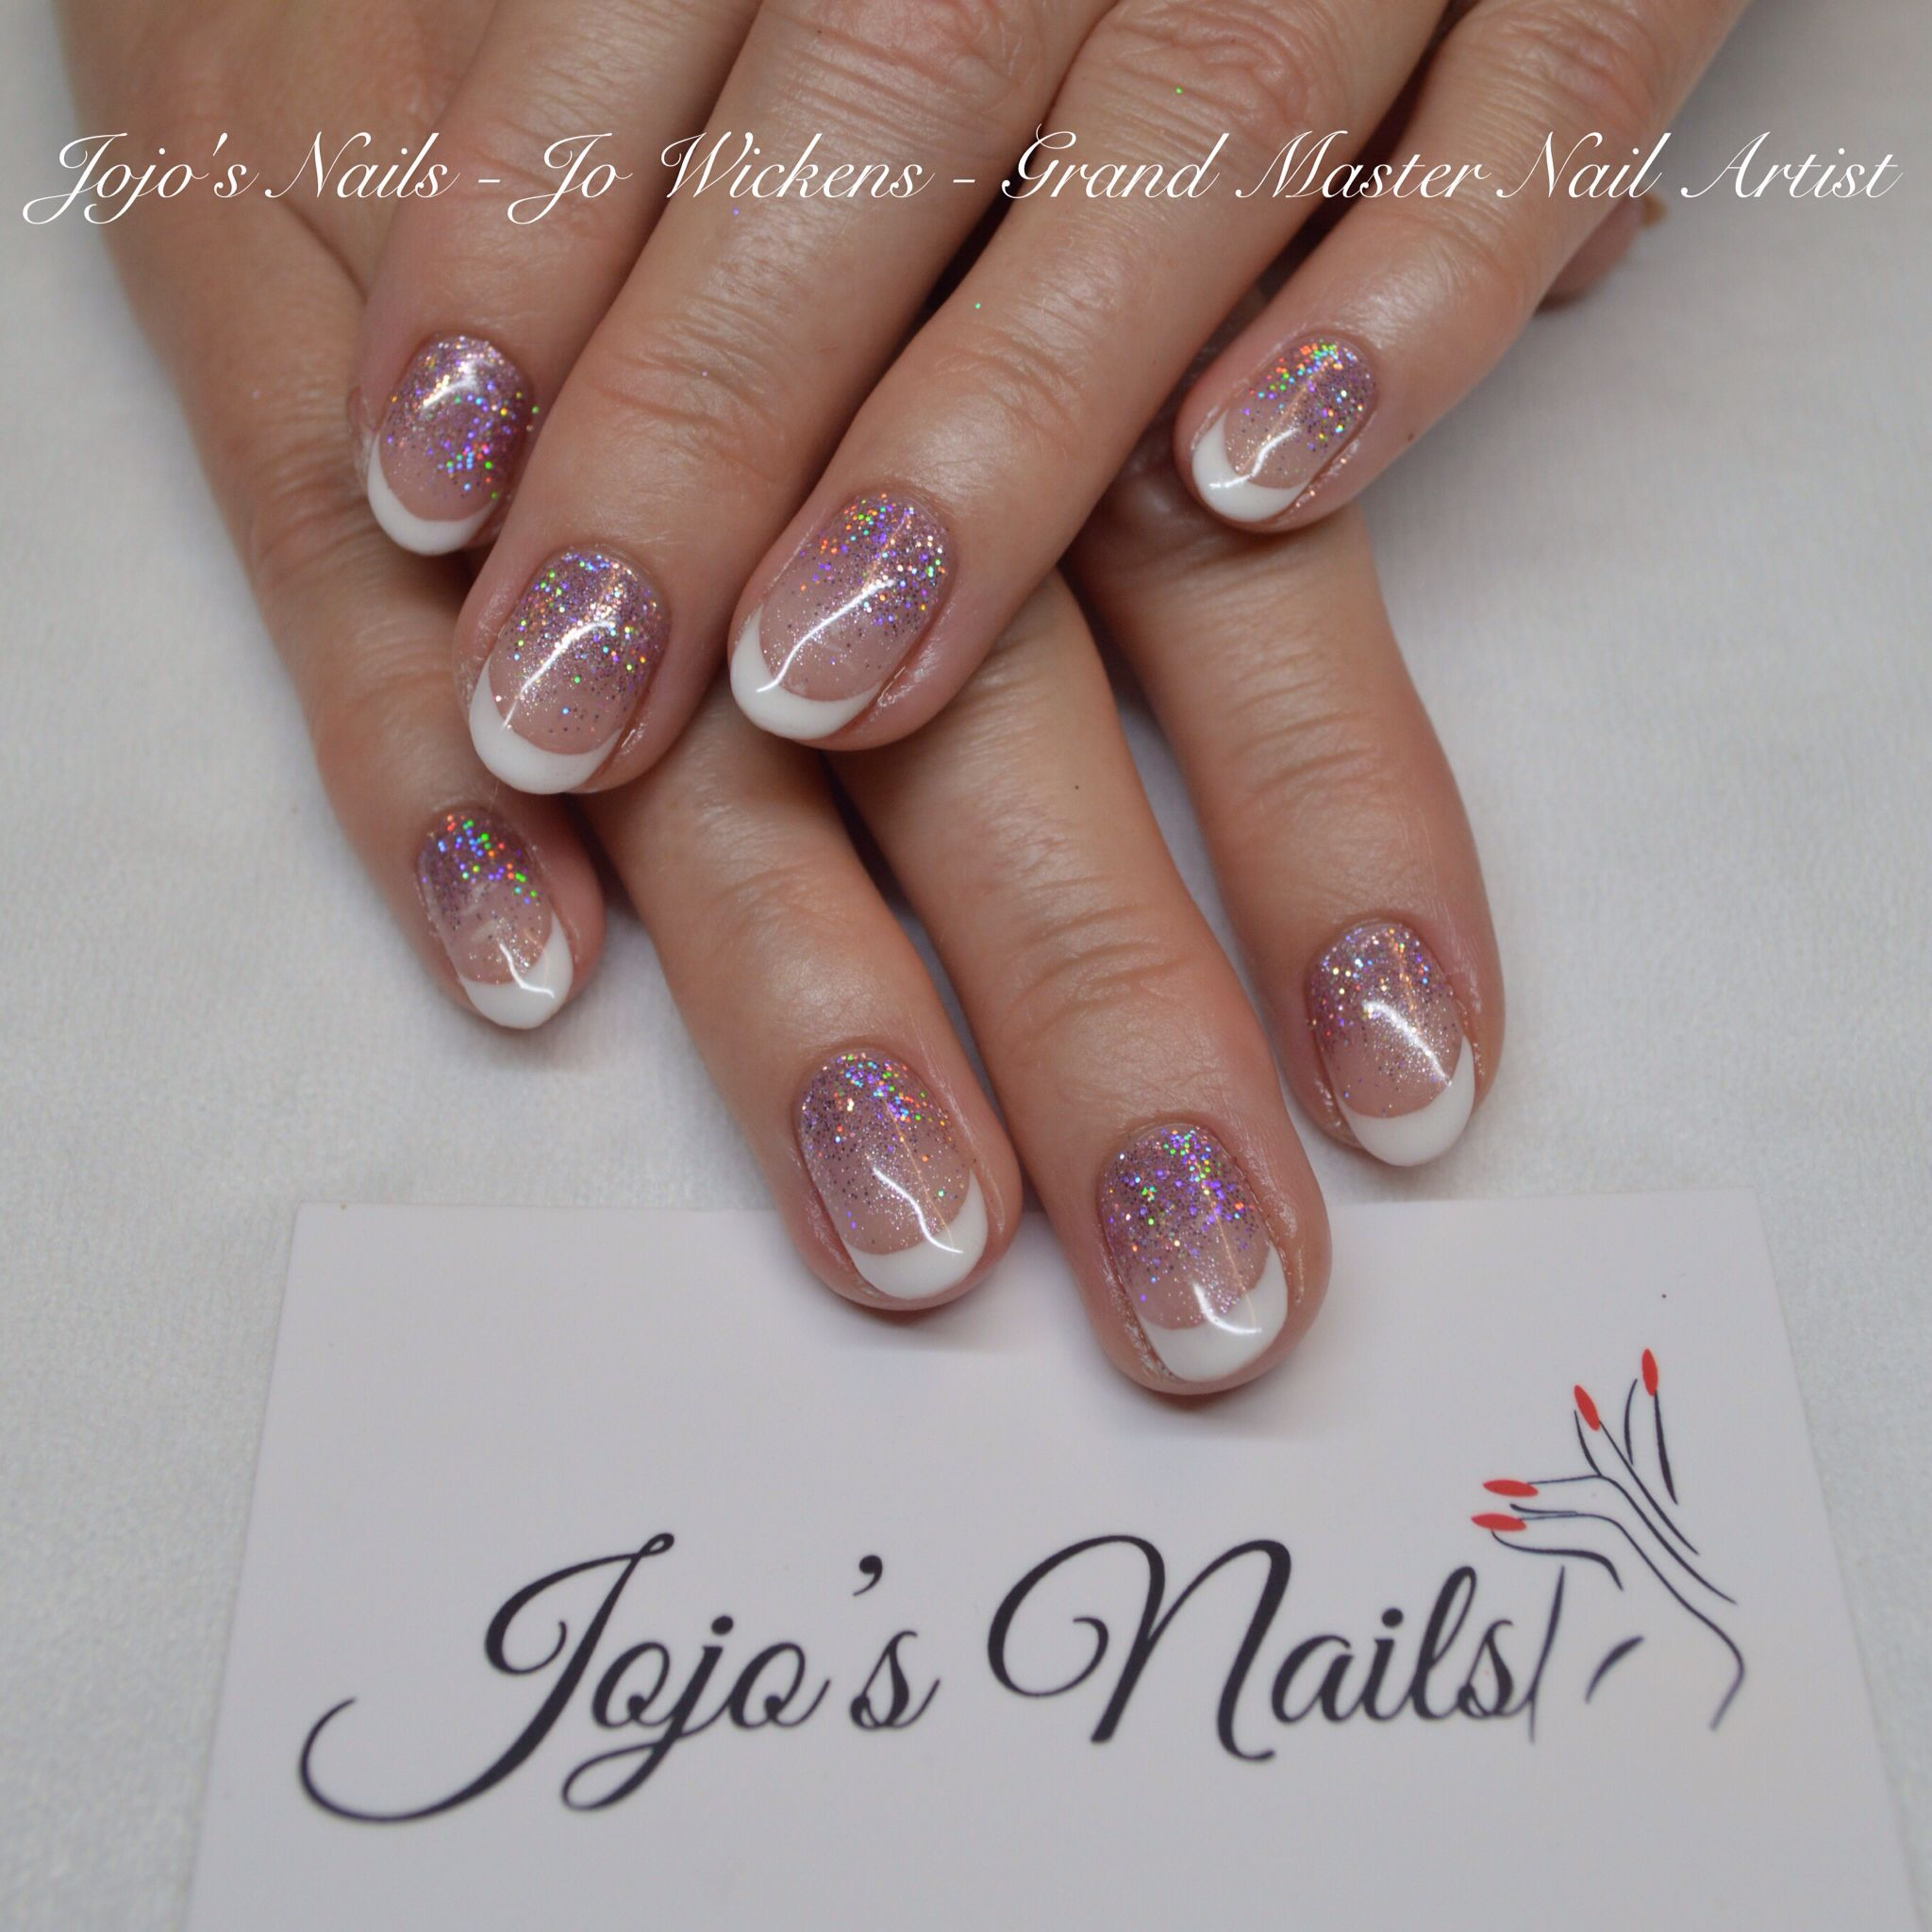 CND Shellac french manicure with glitter fade - By Jo Wickens ...